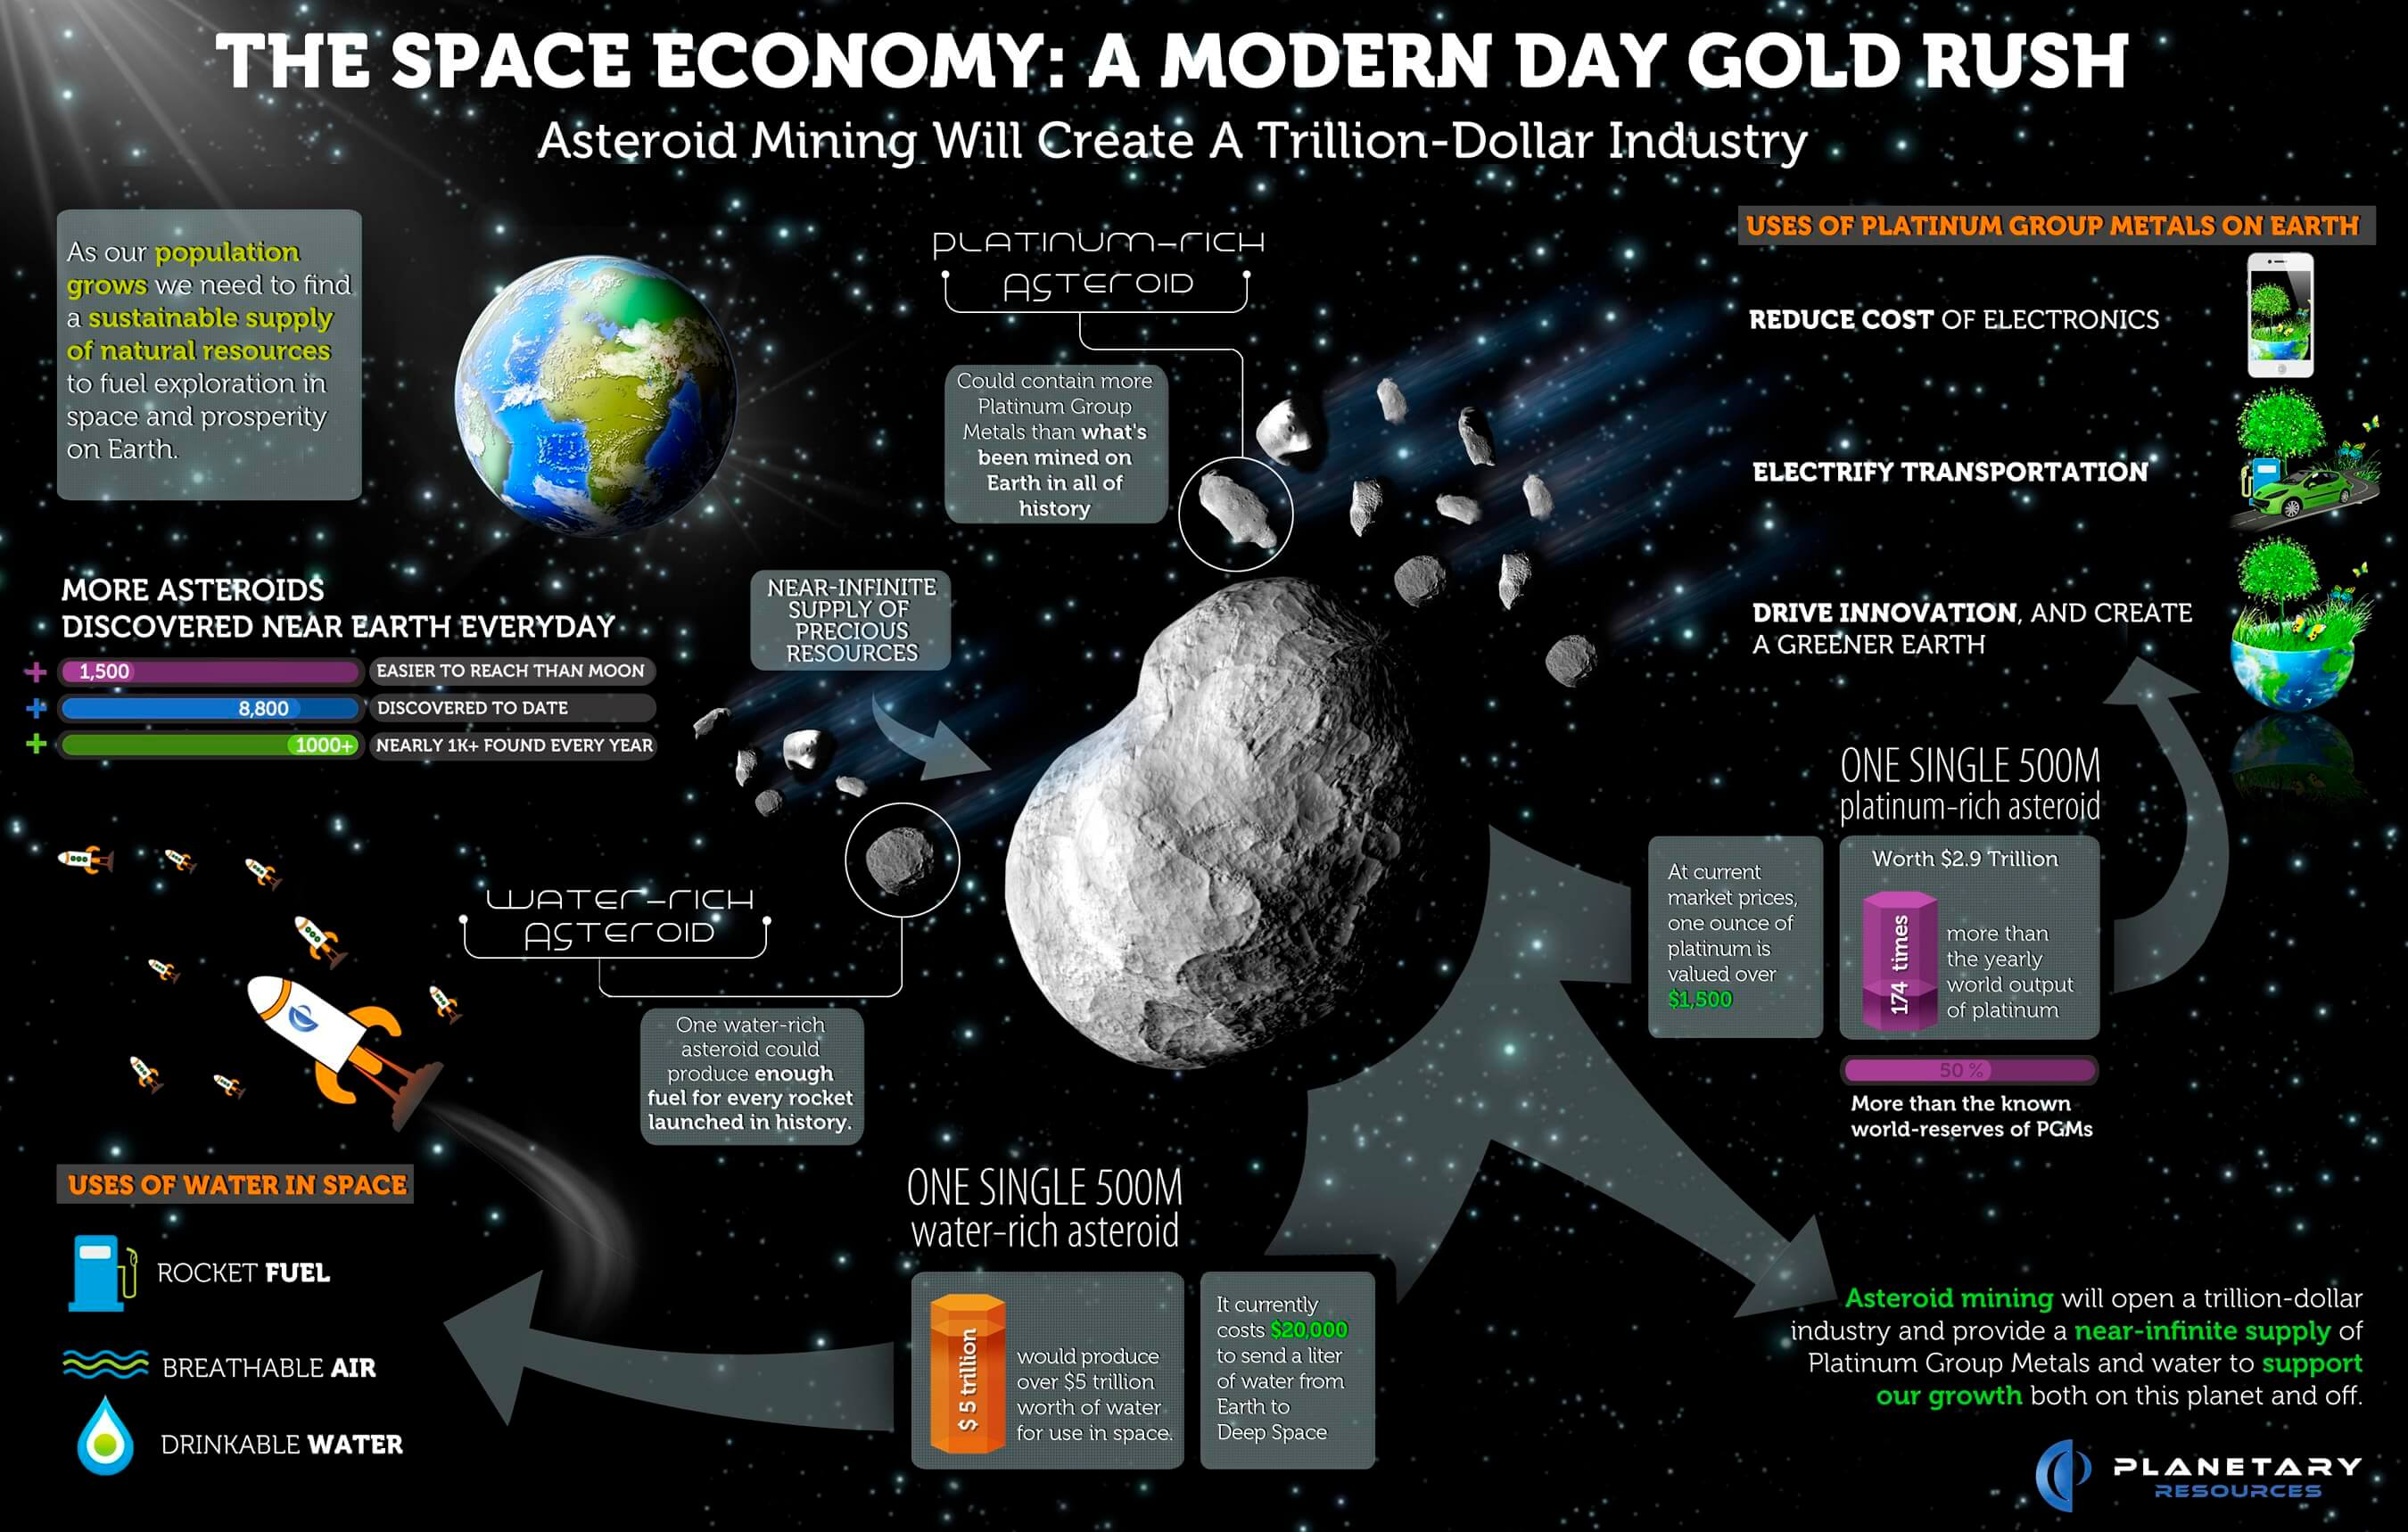 The Space Economy is a modern-day gold rush 100 times bigger than Bitcoin. Asteroid mining will create a multitrillion-dollar industry. Keynote Speaker Igor Beuker